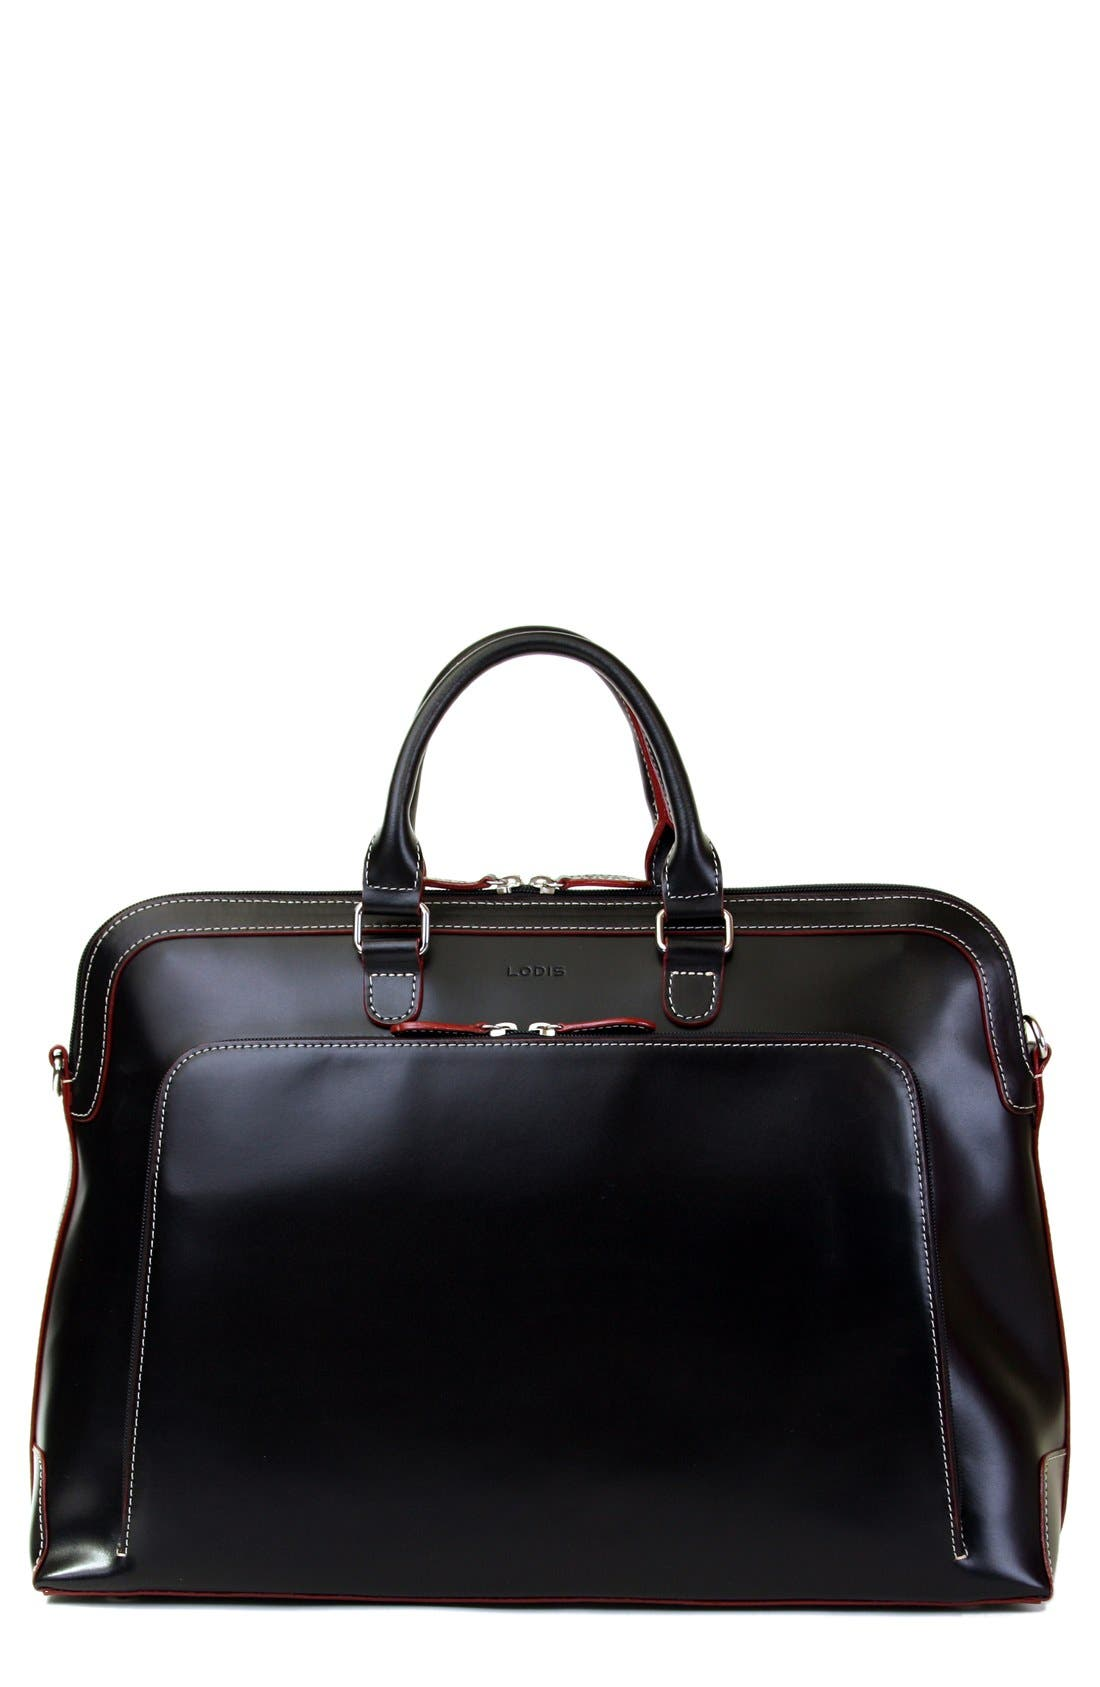 Main Image - Lodis 'Audrey Brera' Leather Briefcase